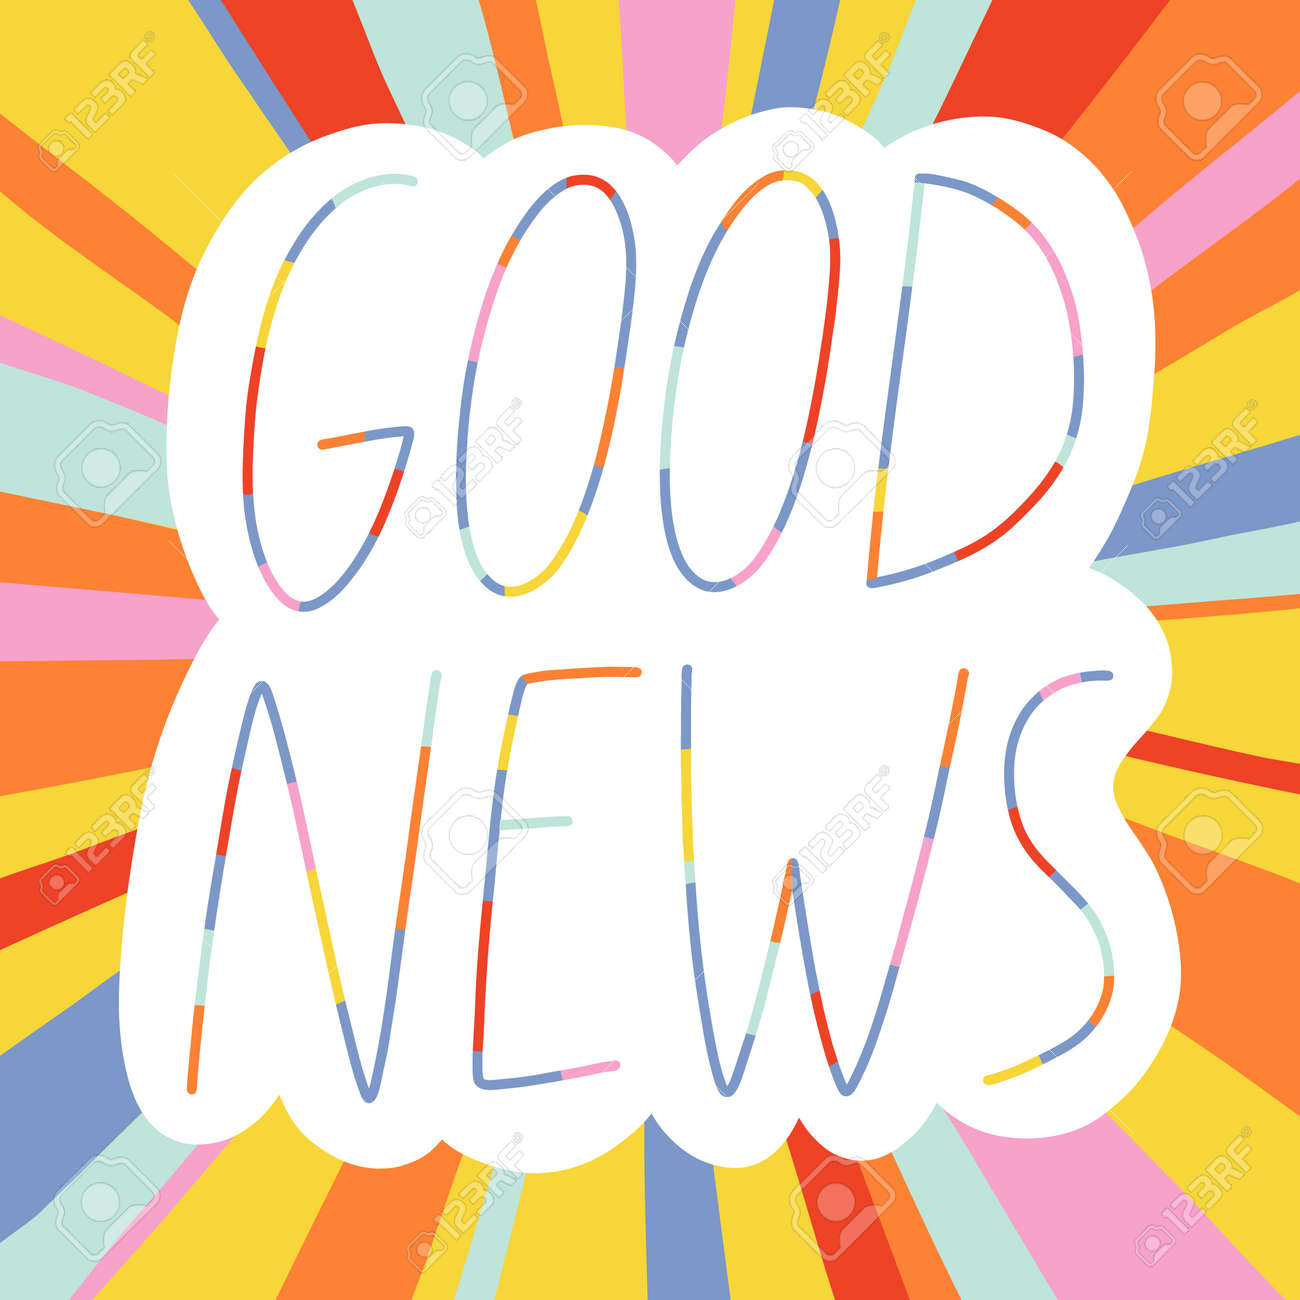 Good news colorful lettering on bright striped background, vector illustration - 163258922